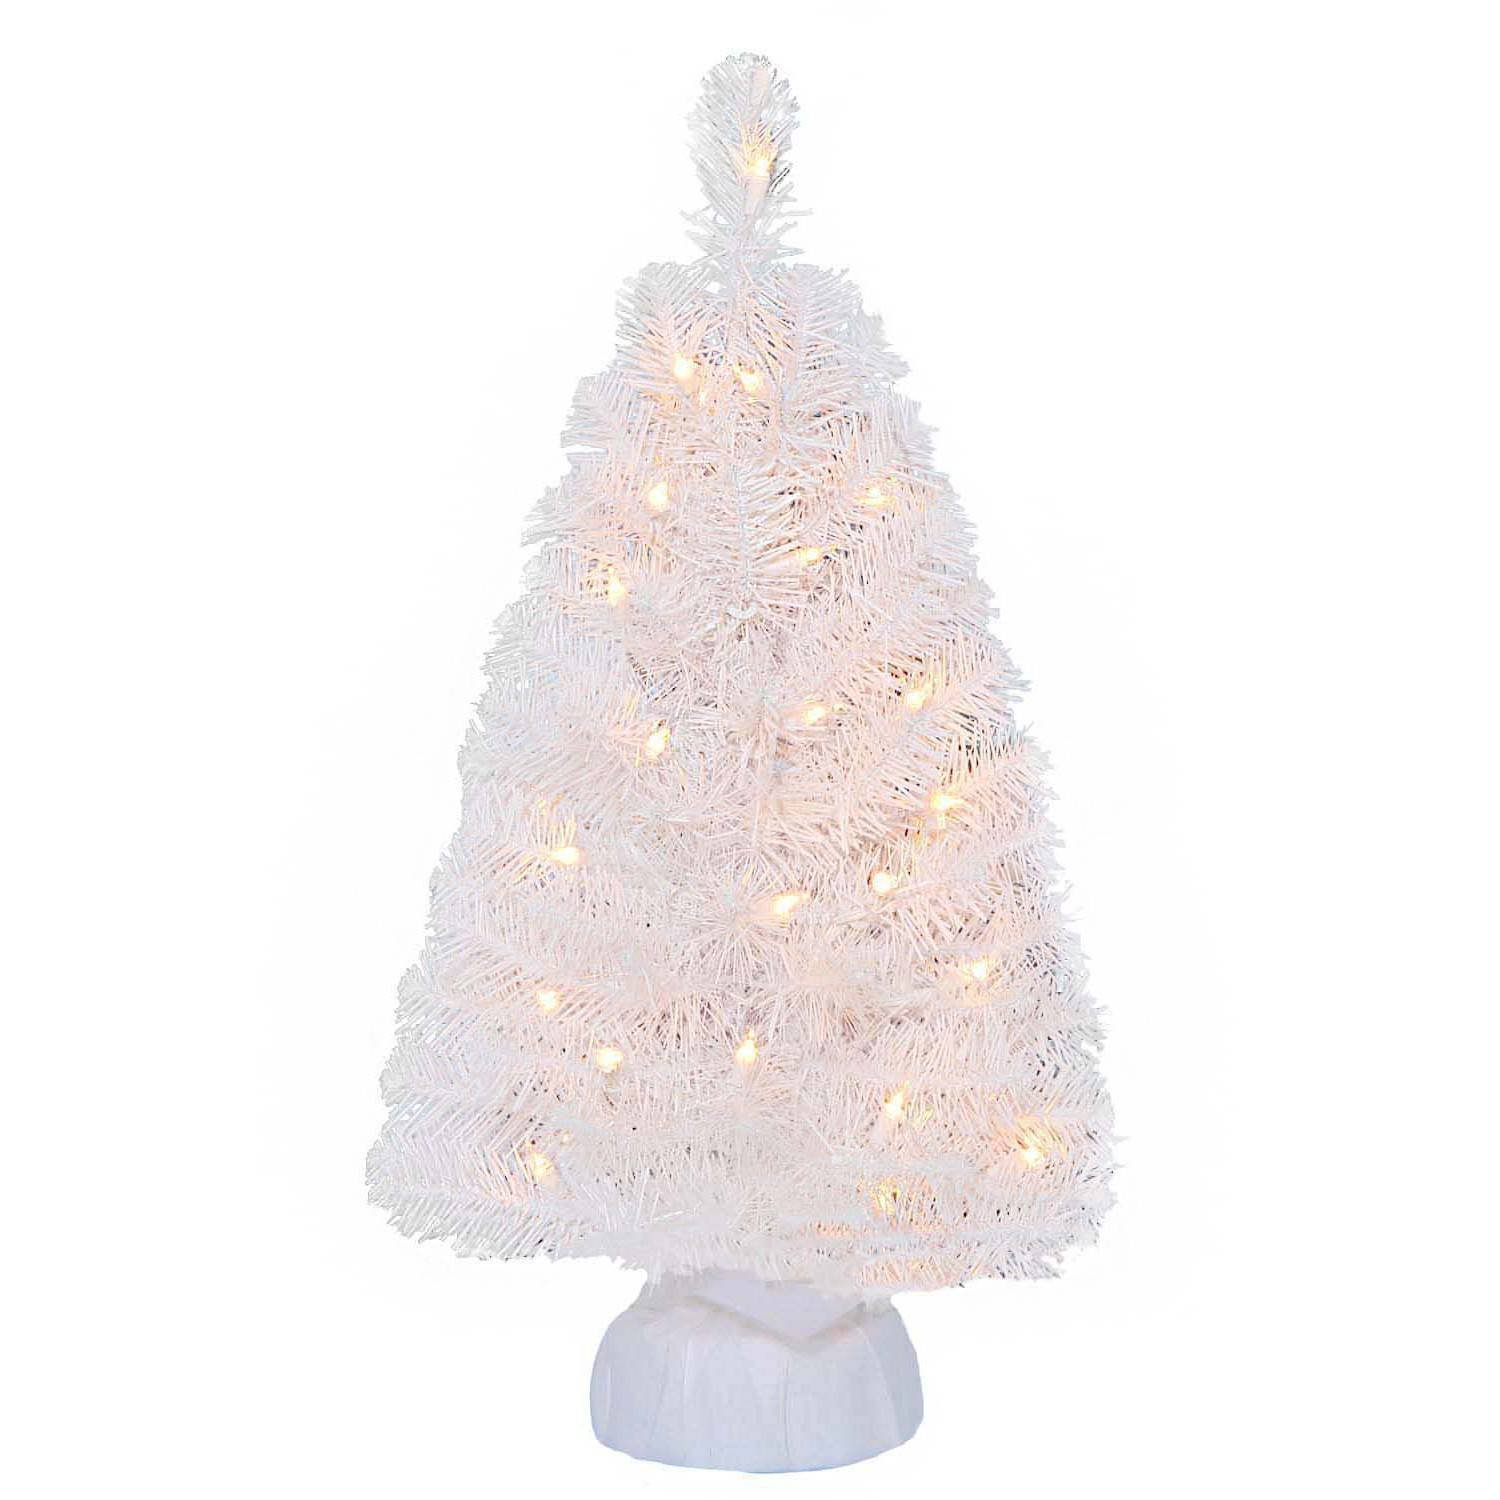 1 24 inch Snowy White Christmas Tree Pre-lit Battery Operated Lights . Eclectic Blackbird Small Artificial Christmas Tree Pre-lit